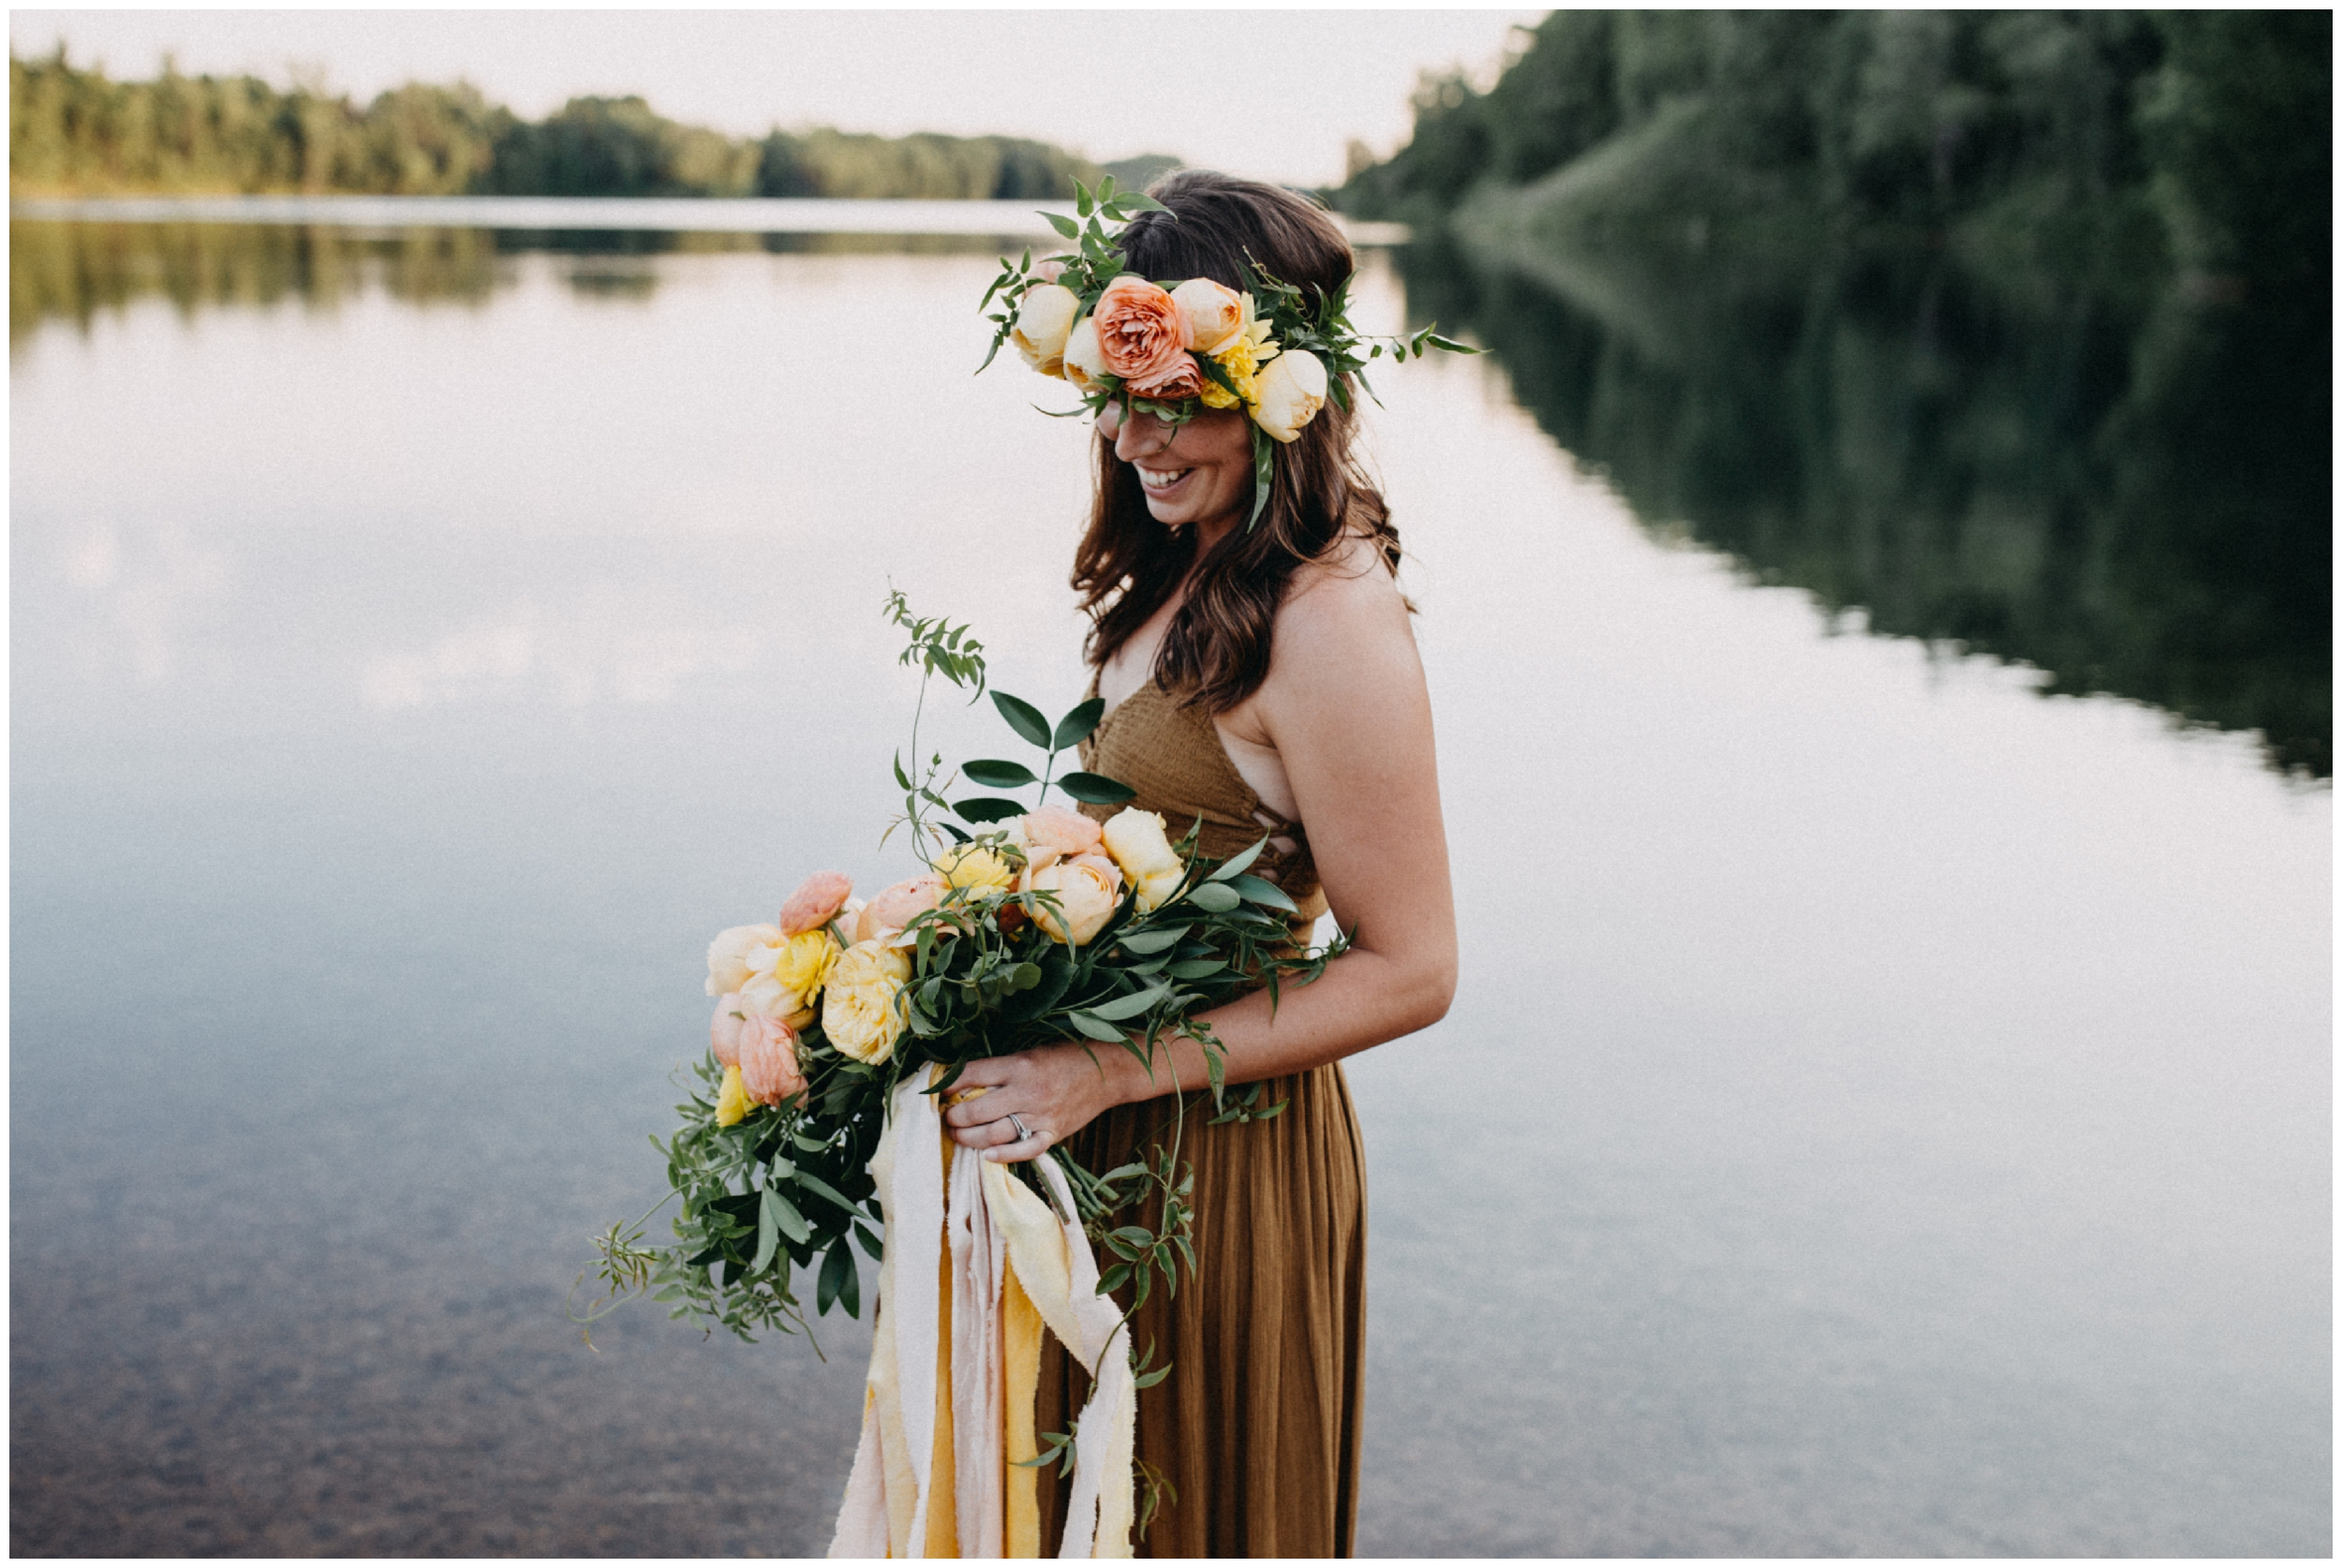 Boho styled portrait session with flower crown photographed by Brainerd Minnesota photographer Britt DeZeeuw